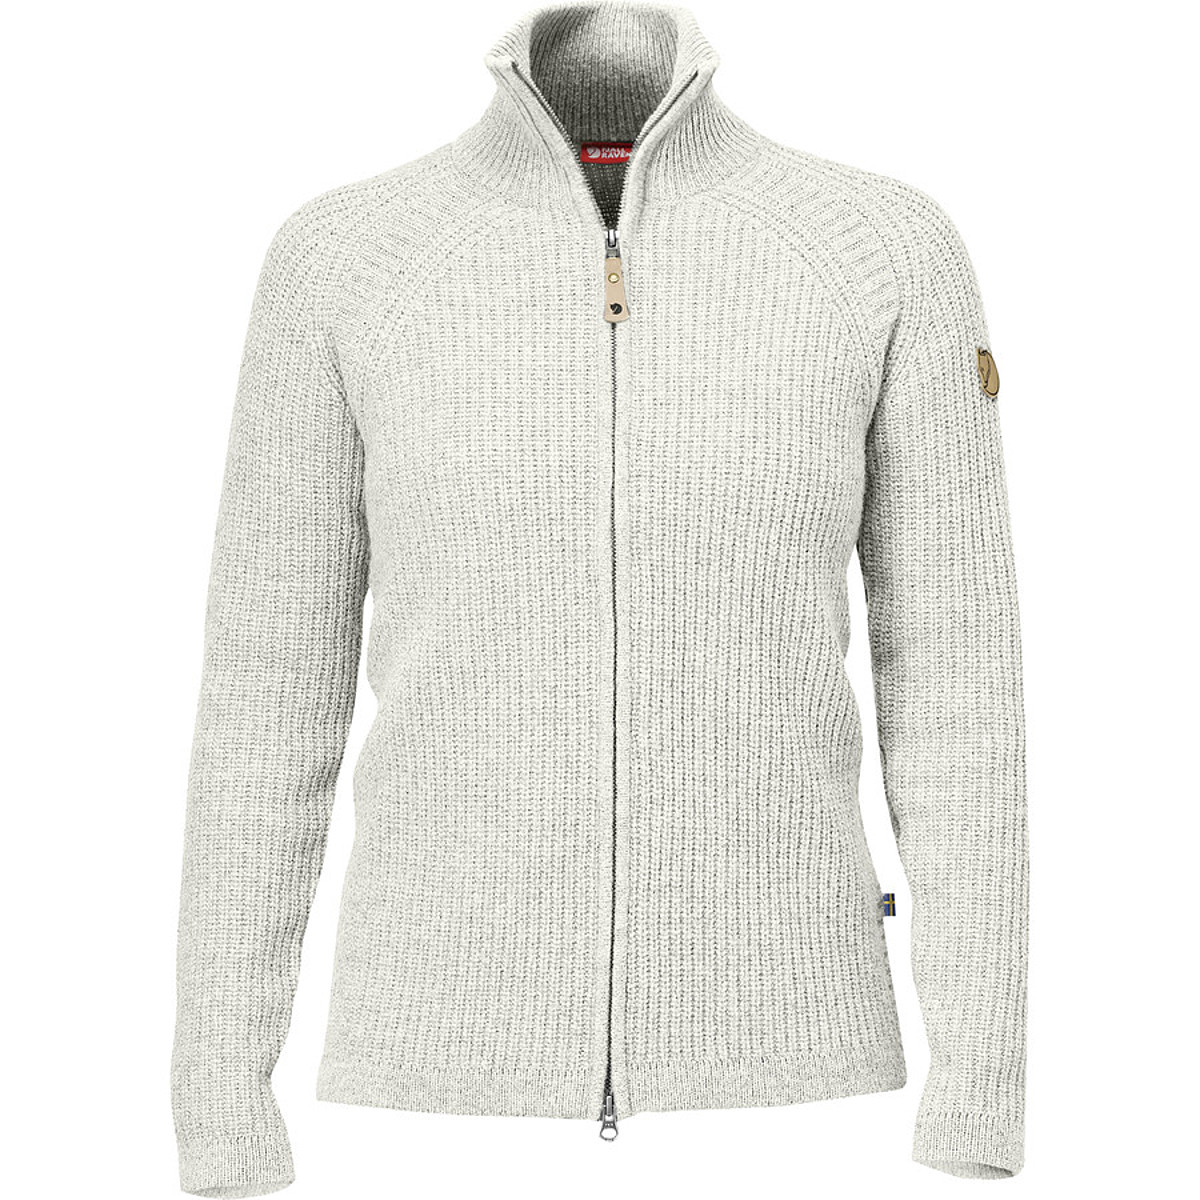 Fjallraven Ovik Cardigan Sweater